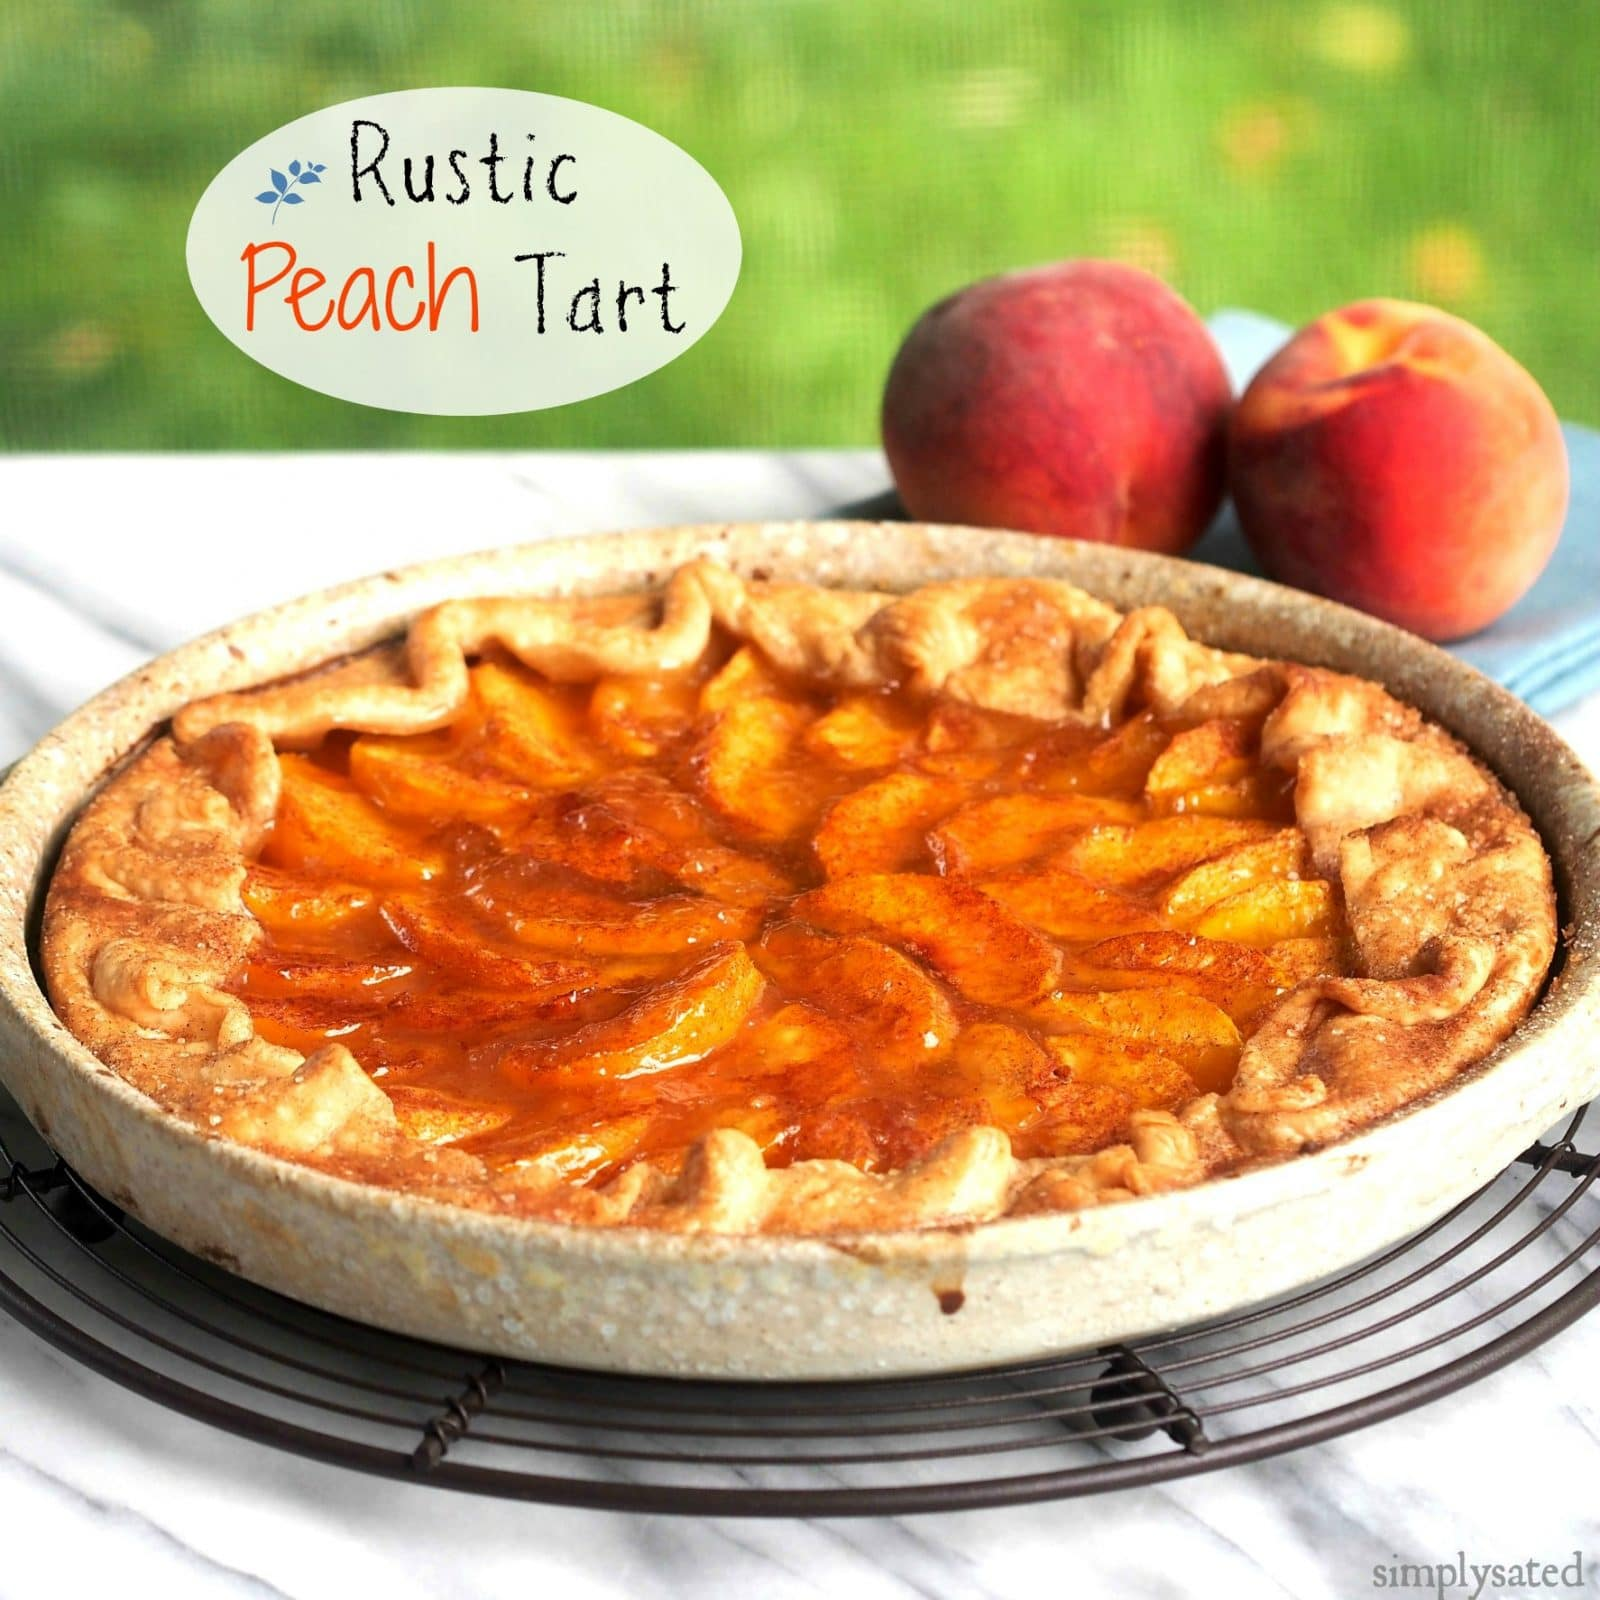 Rustic Peach Tart is easy, beautiful and delicious. Fresh peaches, store-bought crust and a few simple ingredients come together to make a great dessert. Simply Sated